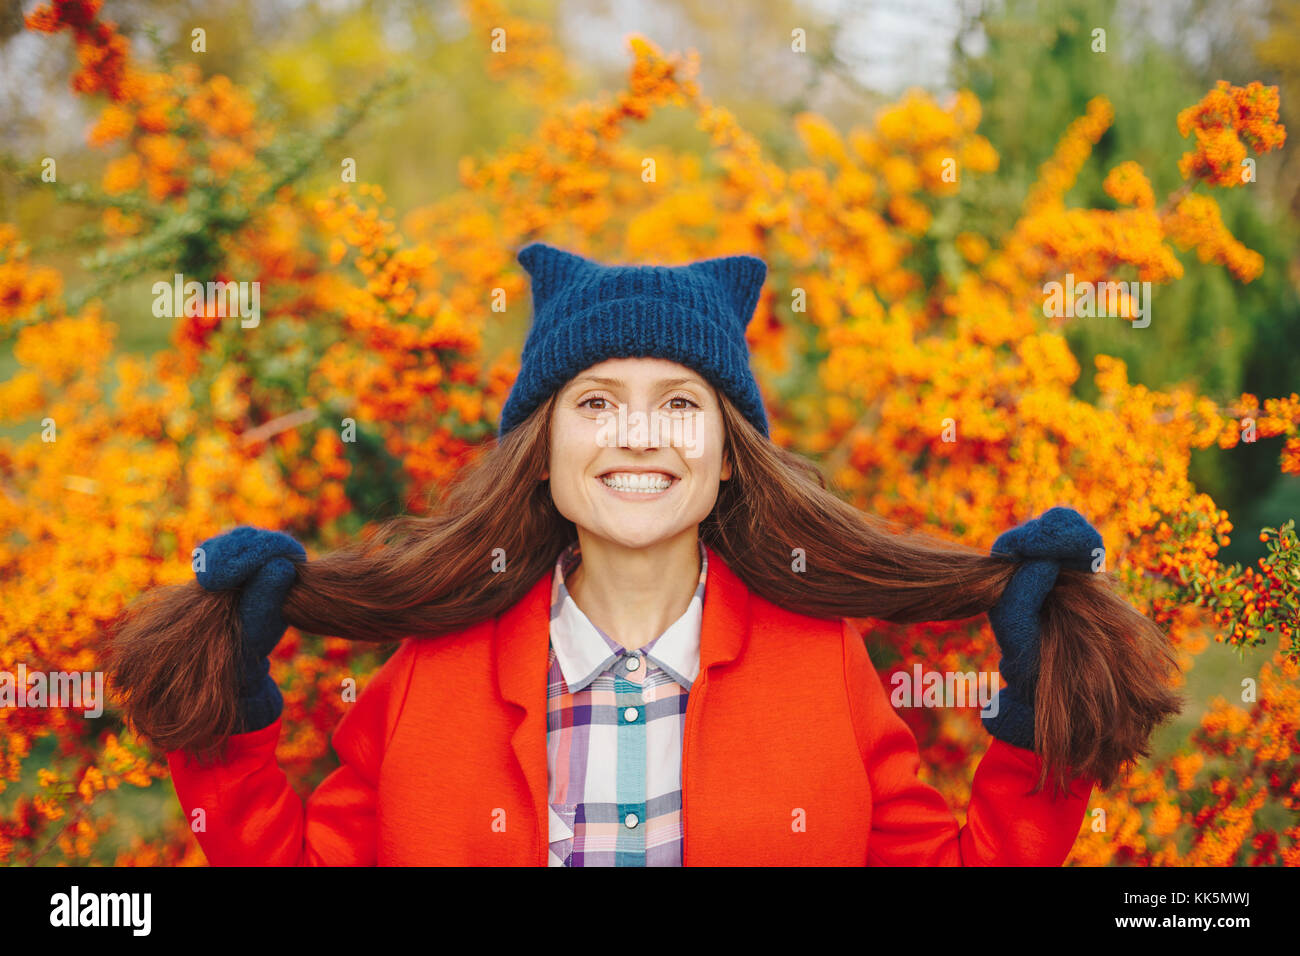 Model wearing stylish winter beanie hat and gloves smiling - Stock Image